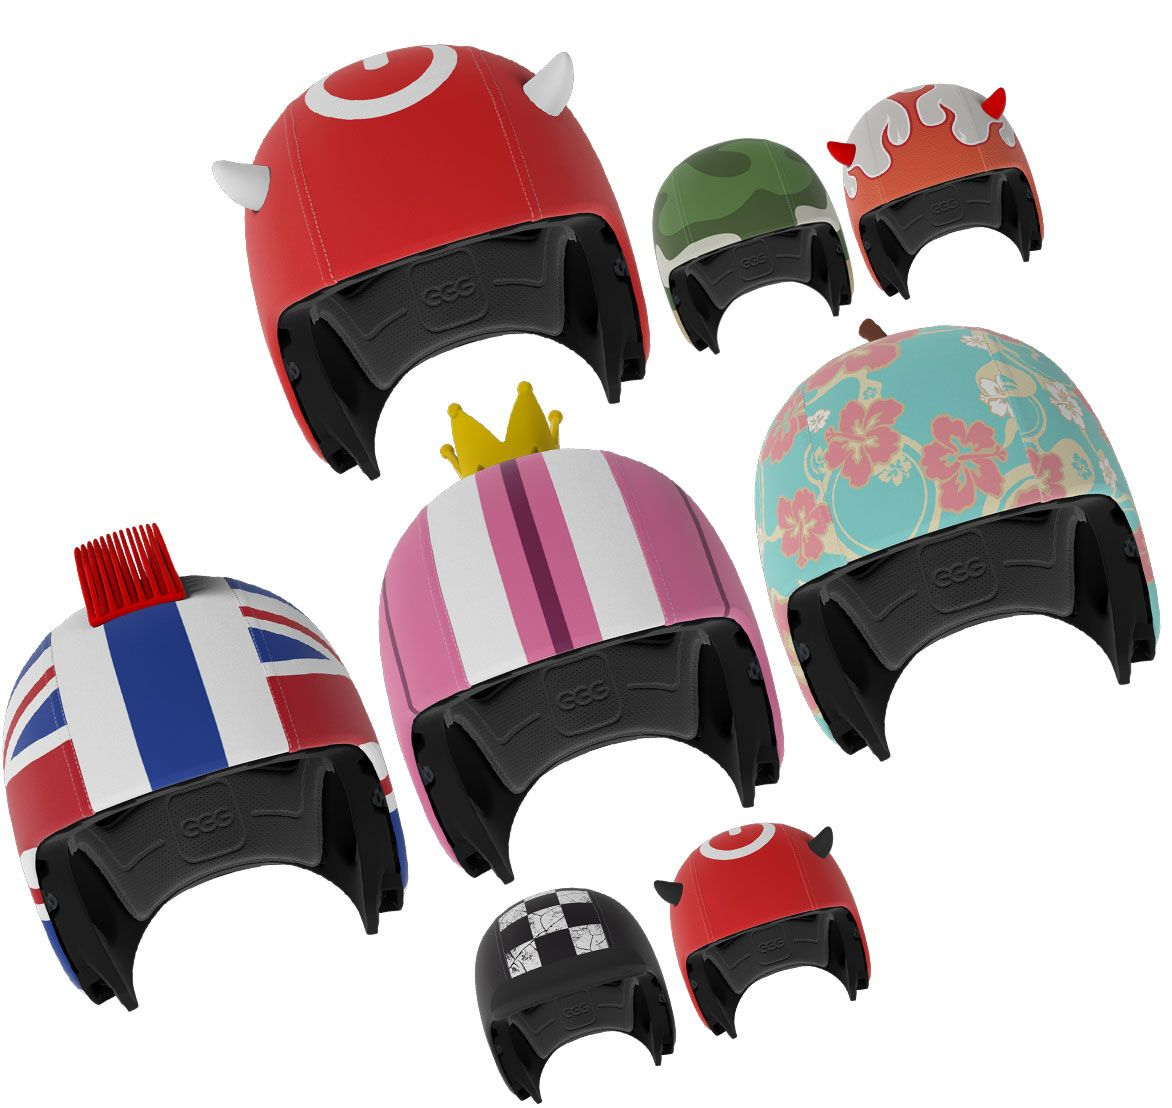 Netherlands Based Egg Helmets Enables Young Bicycle Riders To Make